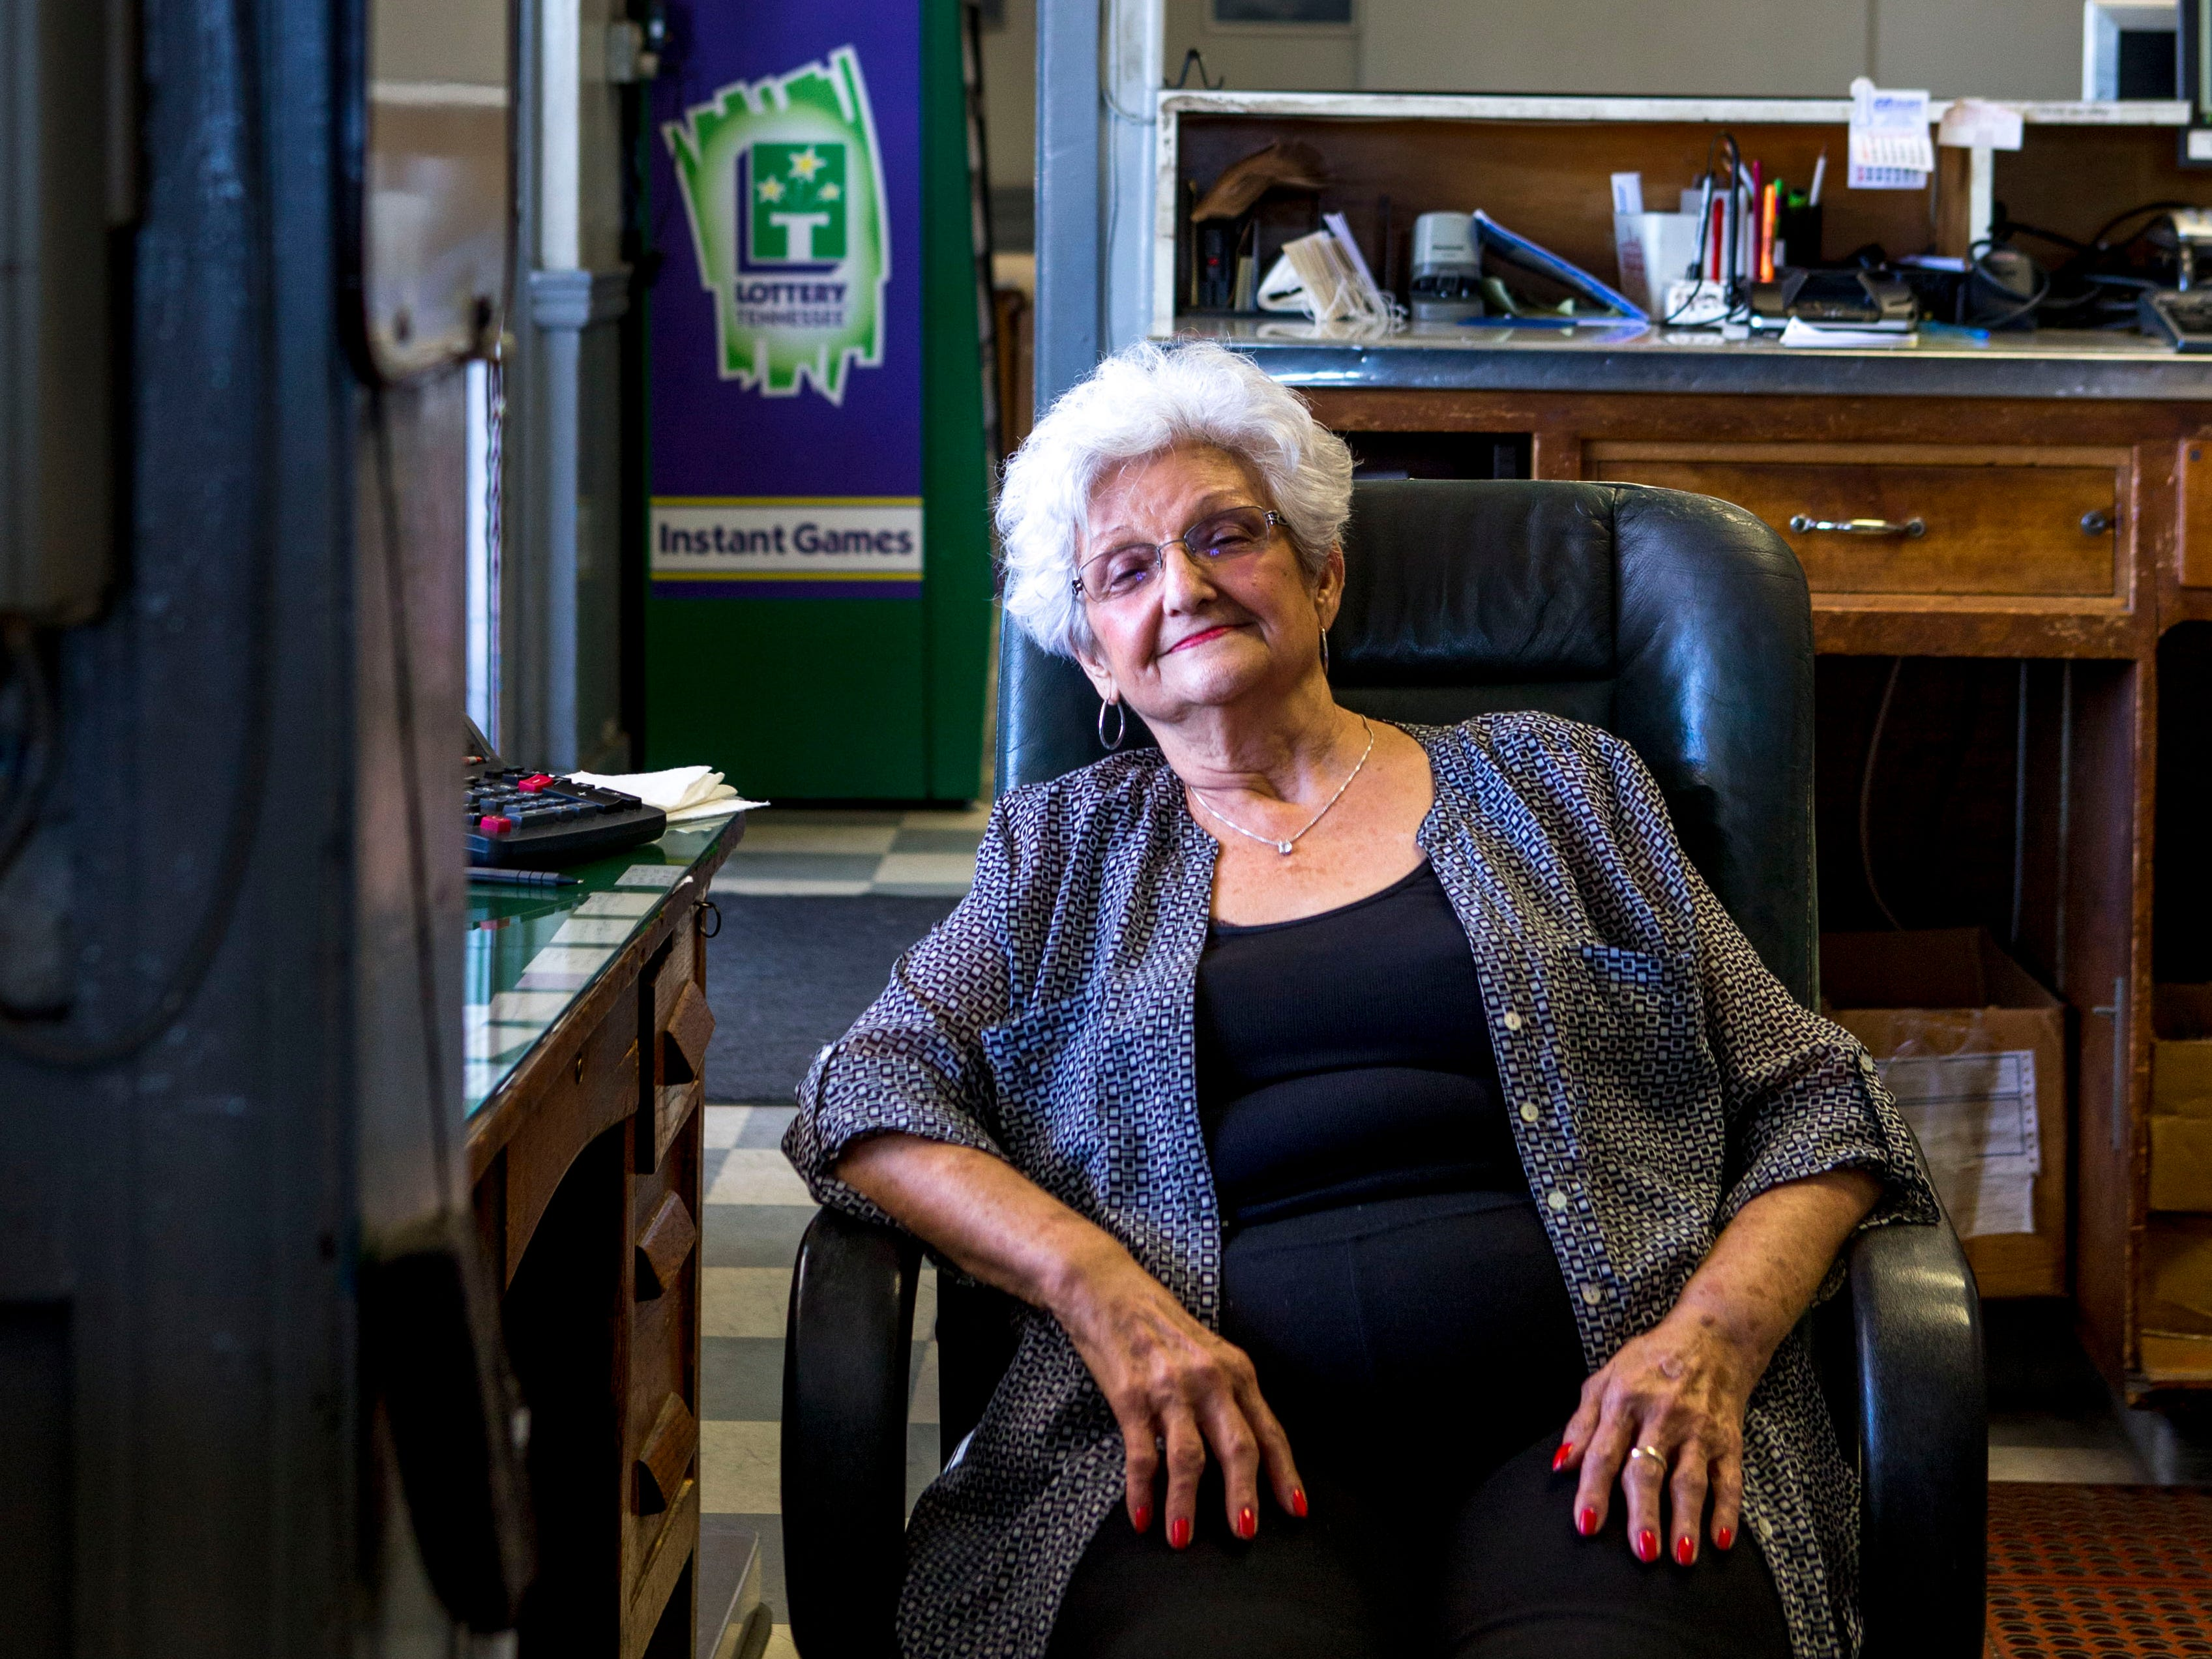 Doris Hollowell sits in her office chair at the Greyhound Bus Station in Jackson, Tenn., on Wednesday, Sept. 12, 2018. Hollowell has owned and operated the terminal since 1973, and decided it was time to take a break and try to relax in retirement while she can. She has seen many faces in and out of the station, including regulars sometimes every day.